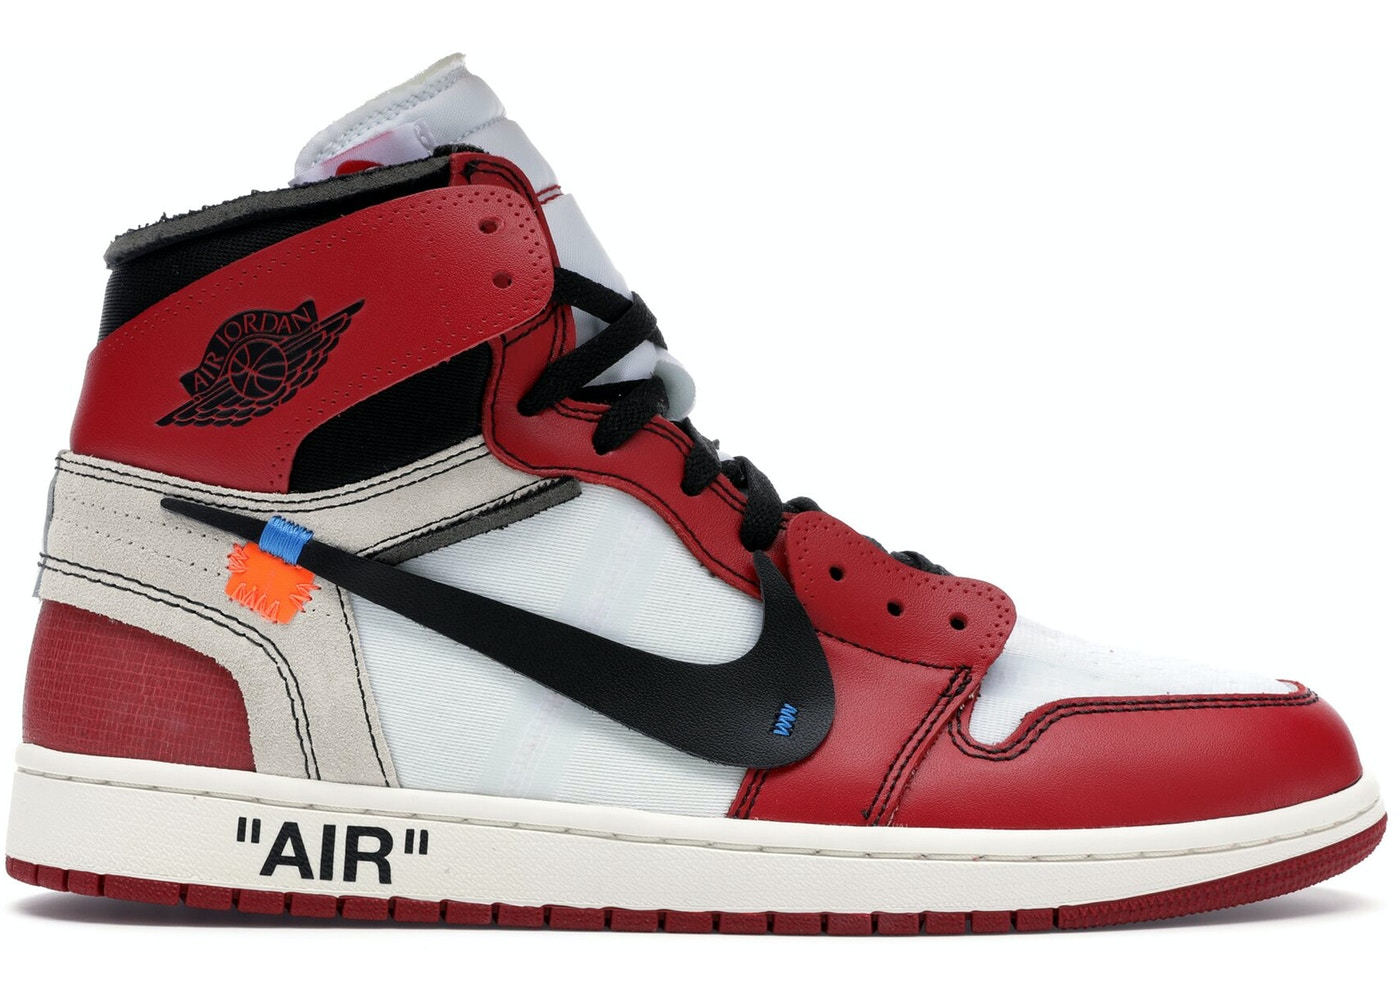 9cd147a6087 Jordan 1 Retro High Off-White Chicago - AA3834-101